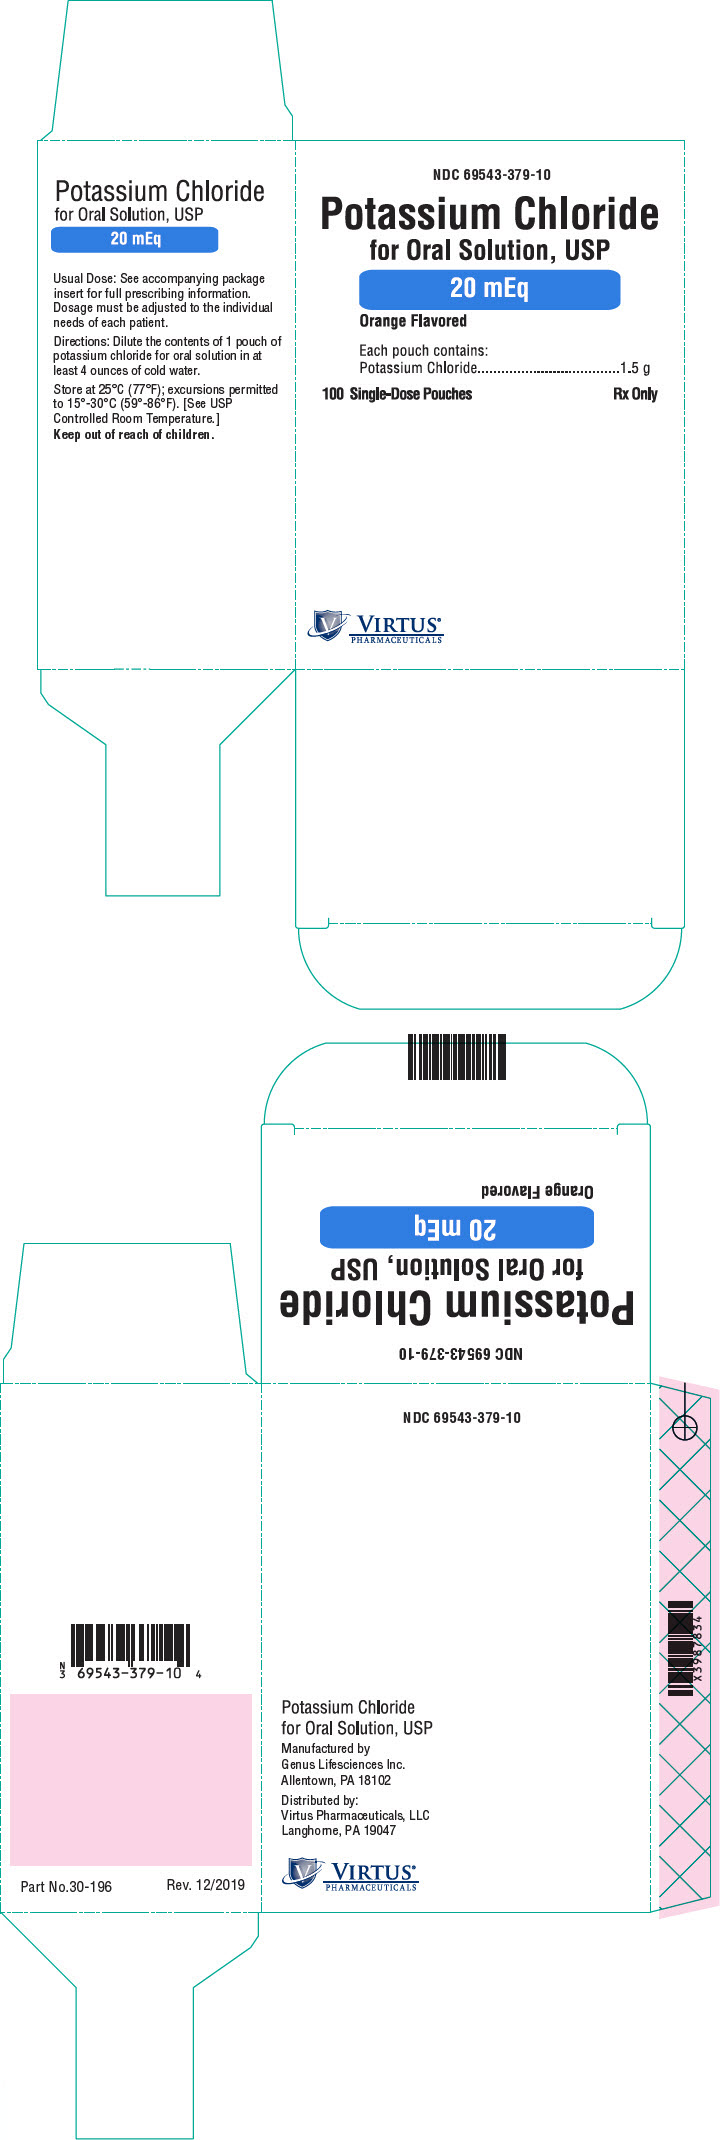 PRINCIPAL DISPLAY PANEL - 1.5 g Pouch Label